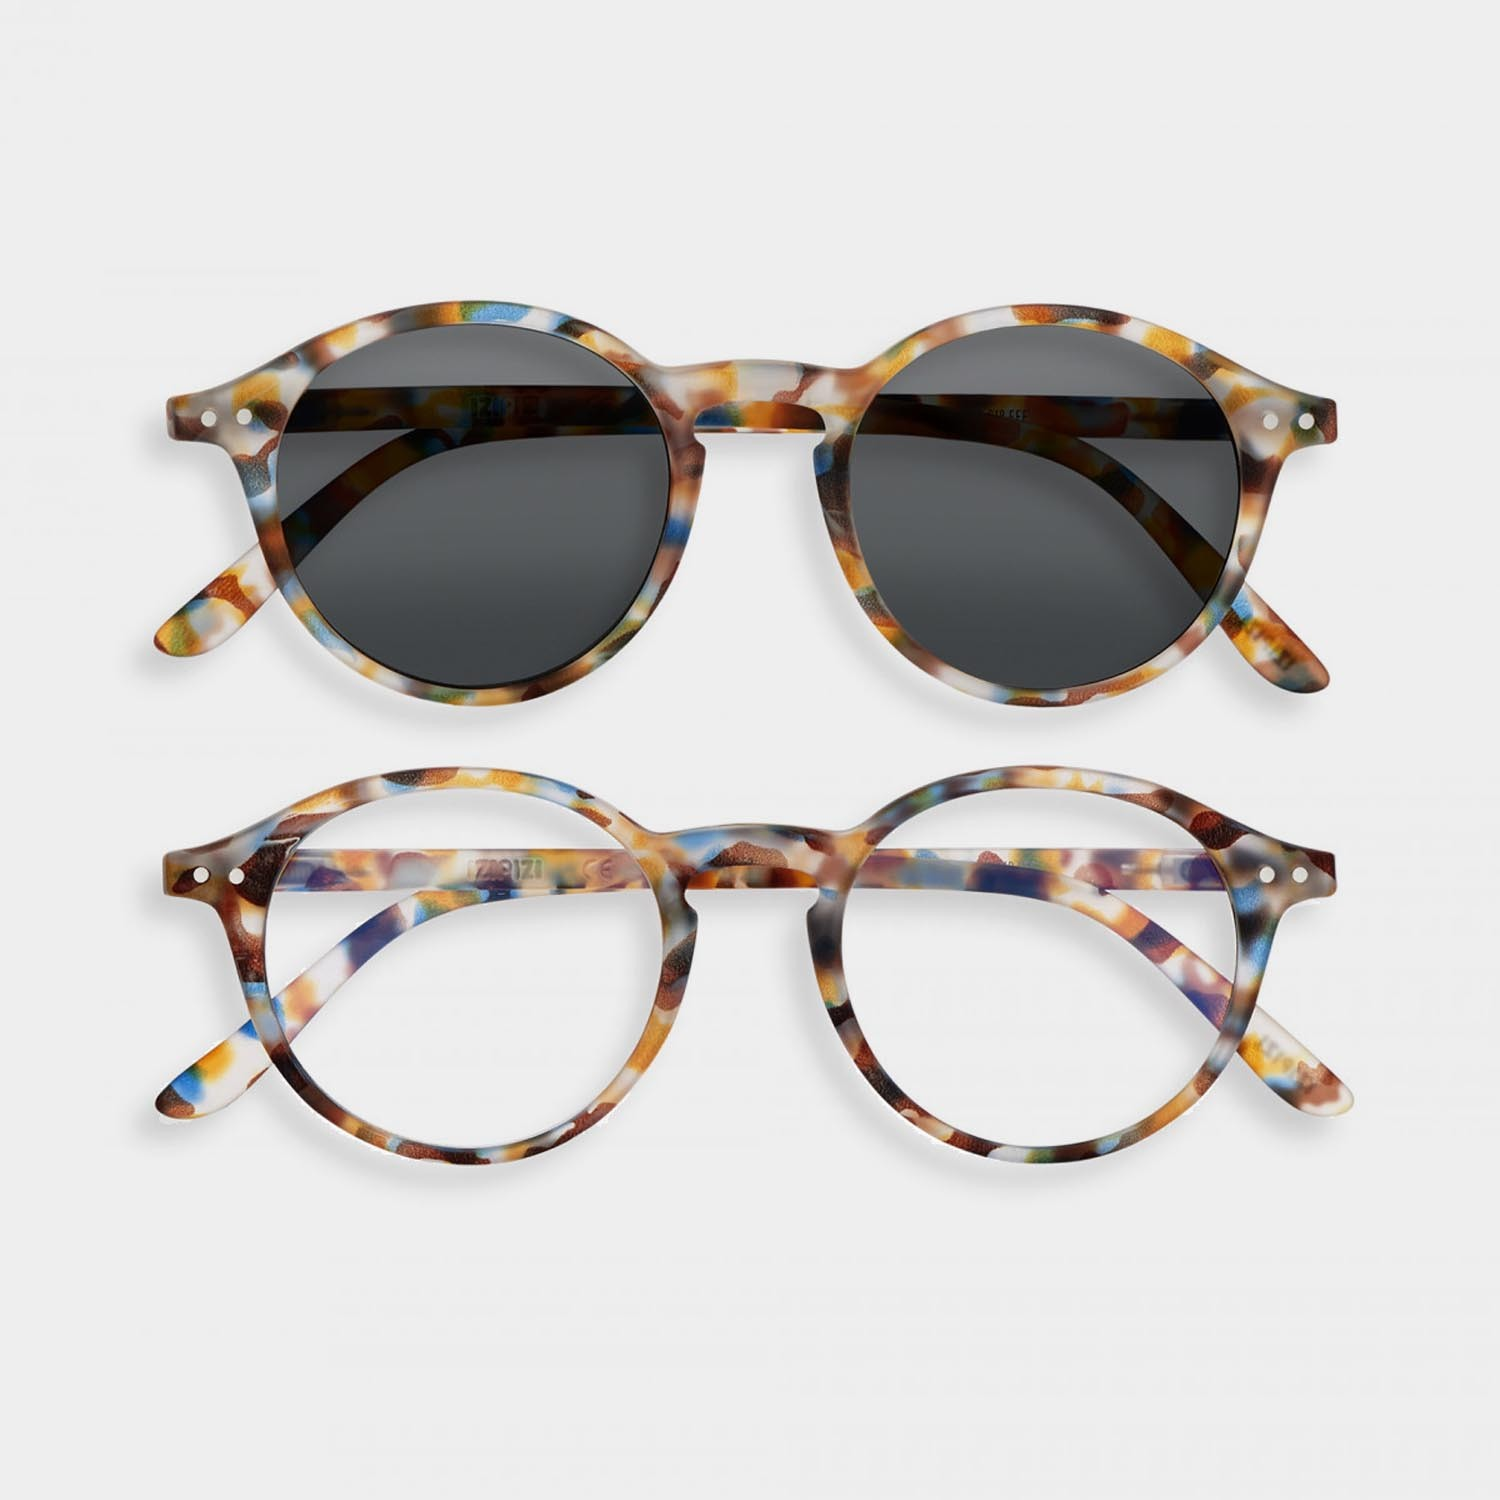 SCREEN and SUN Glasses Duo #D, Blue Tortoise